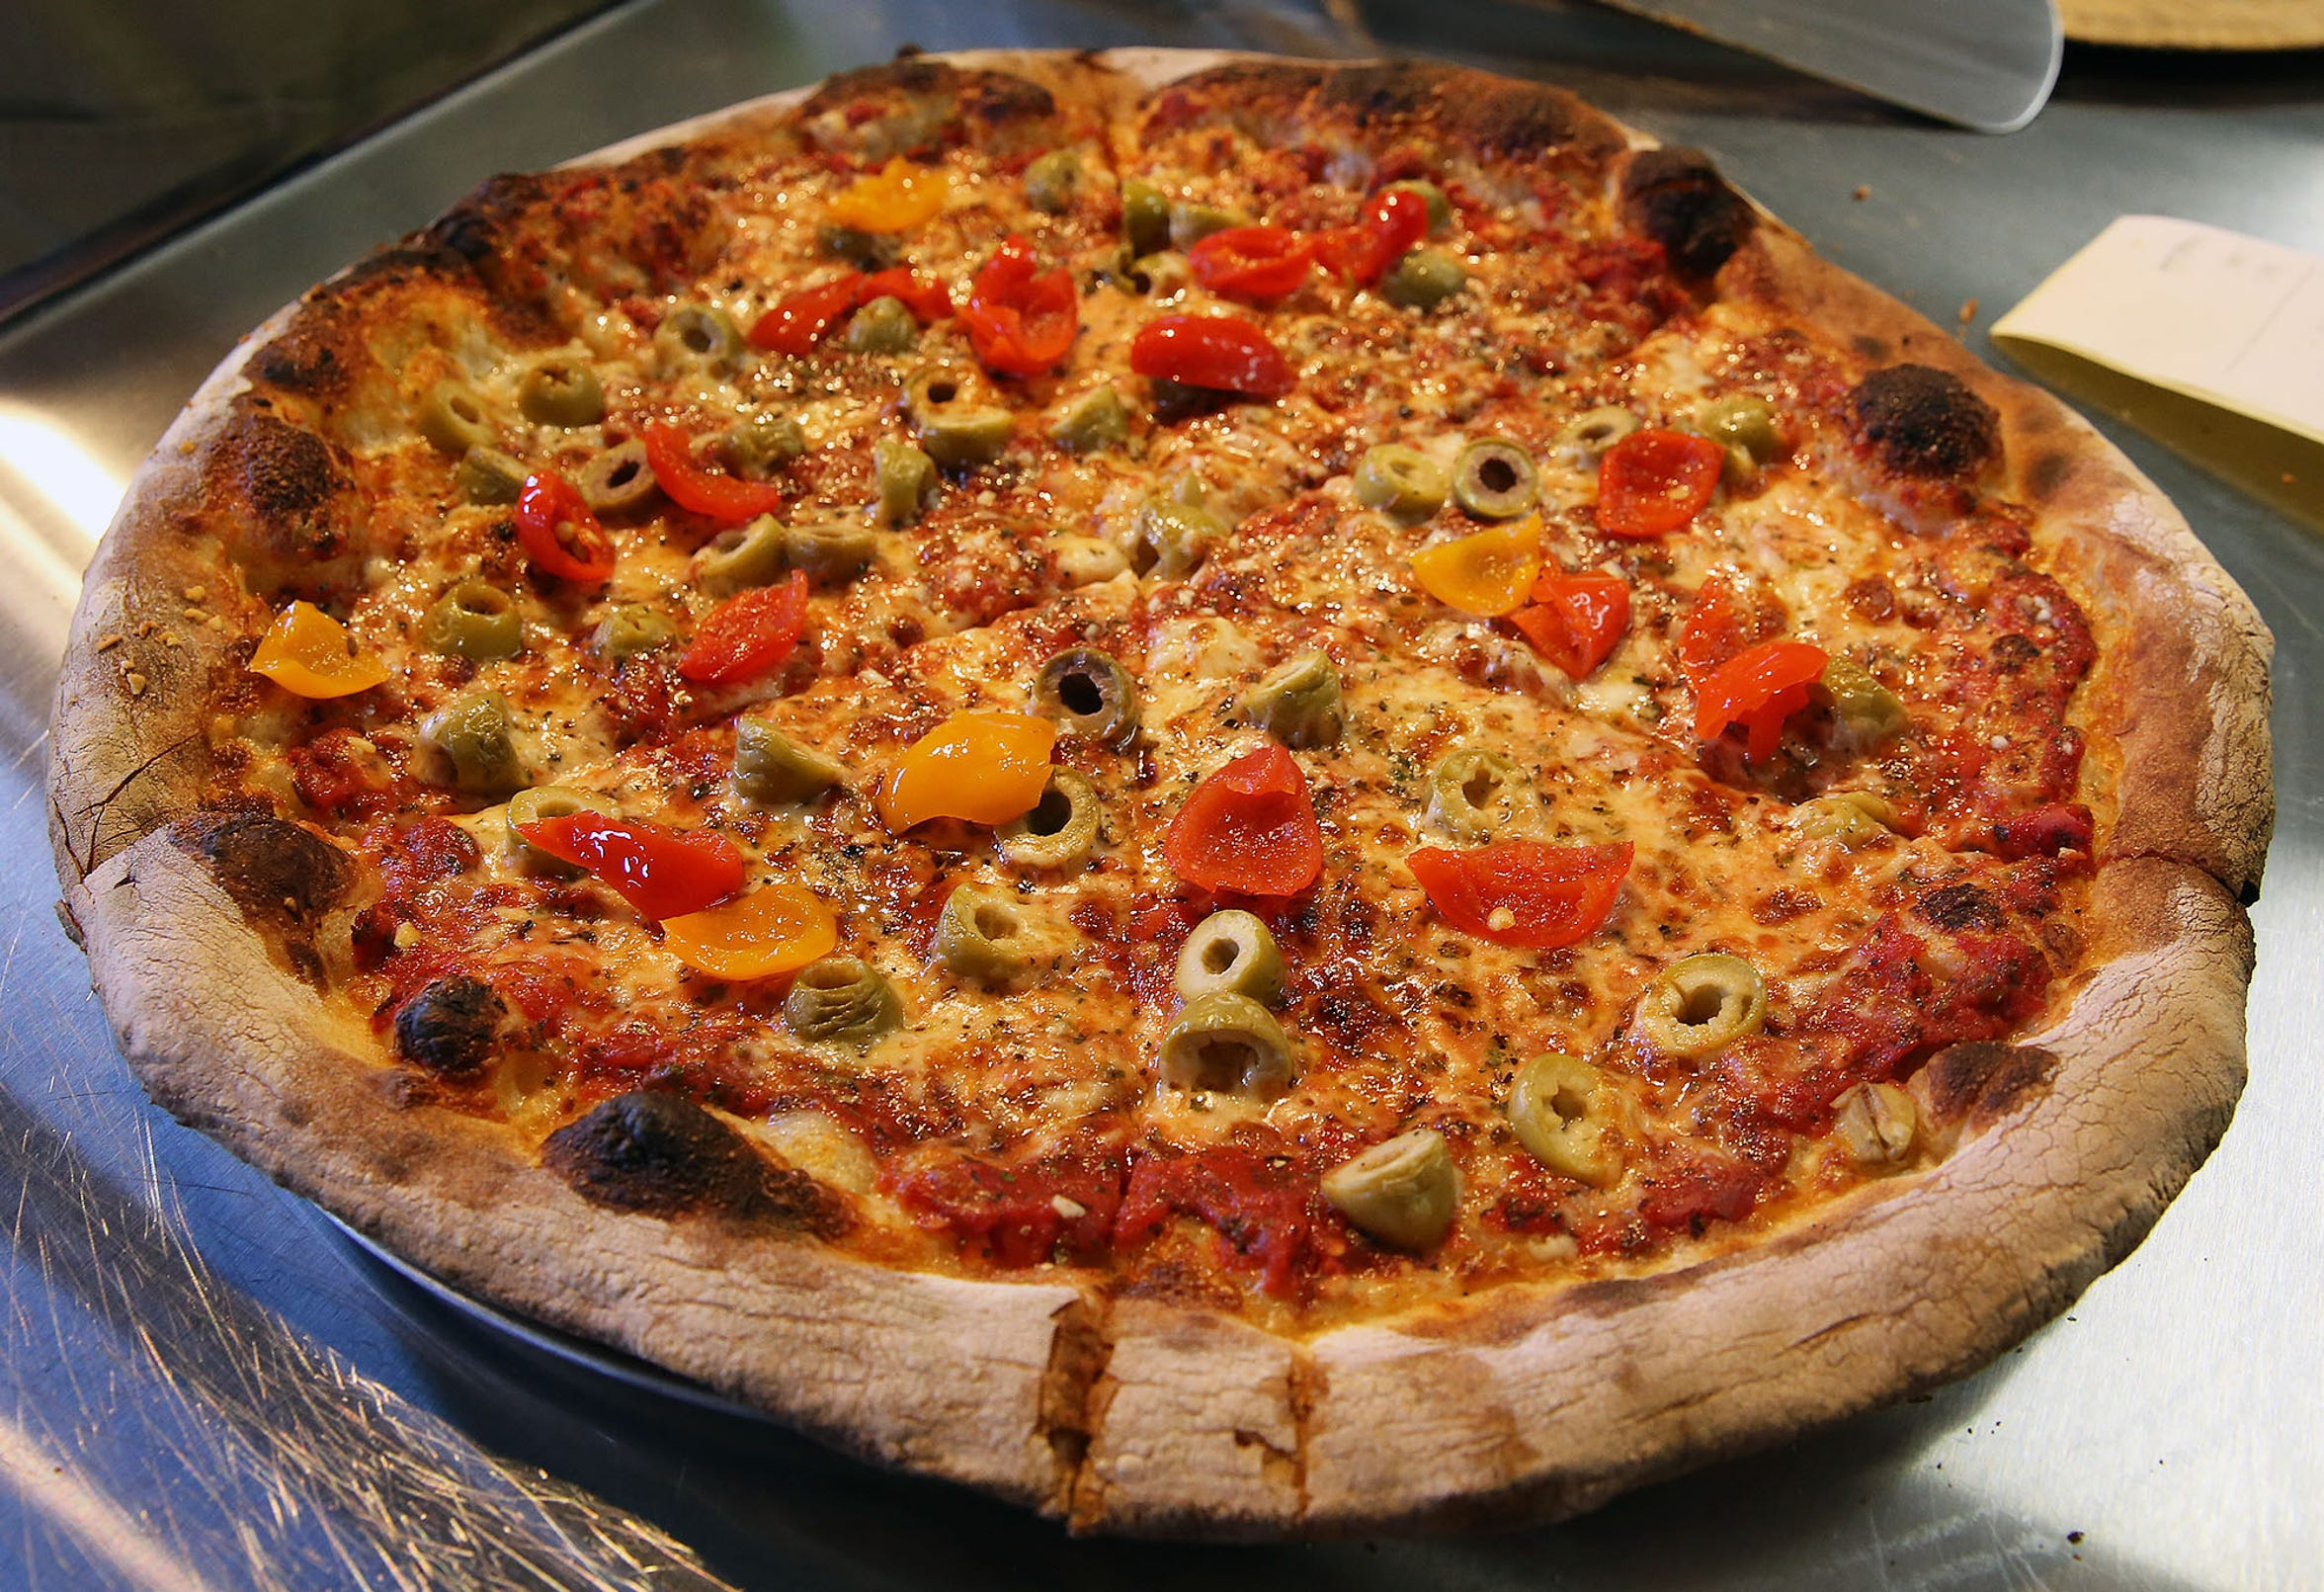 The Loowit at Wy'east Pizza, 5601 W. Vliet St., combines green olives and sweet-hot peppers.